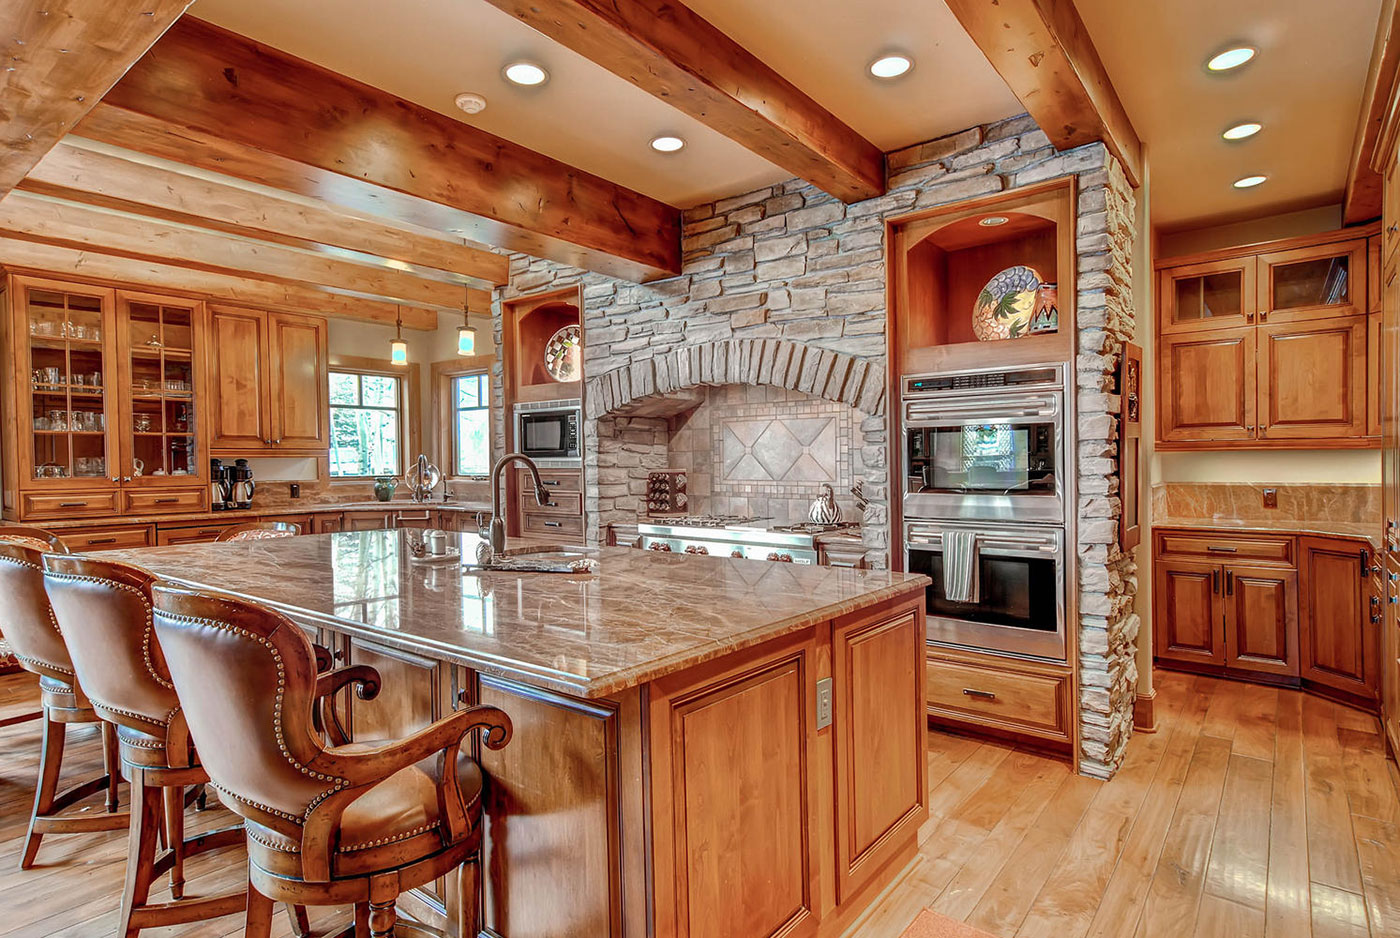 Beaver Creek Mountain Lodging Chateau Tralee Kitchen